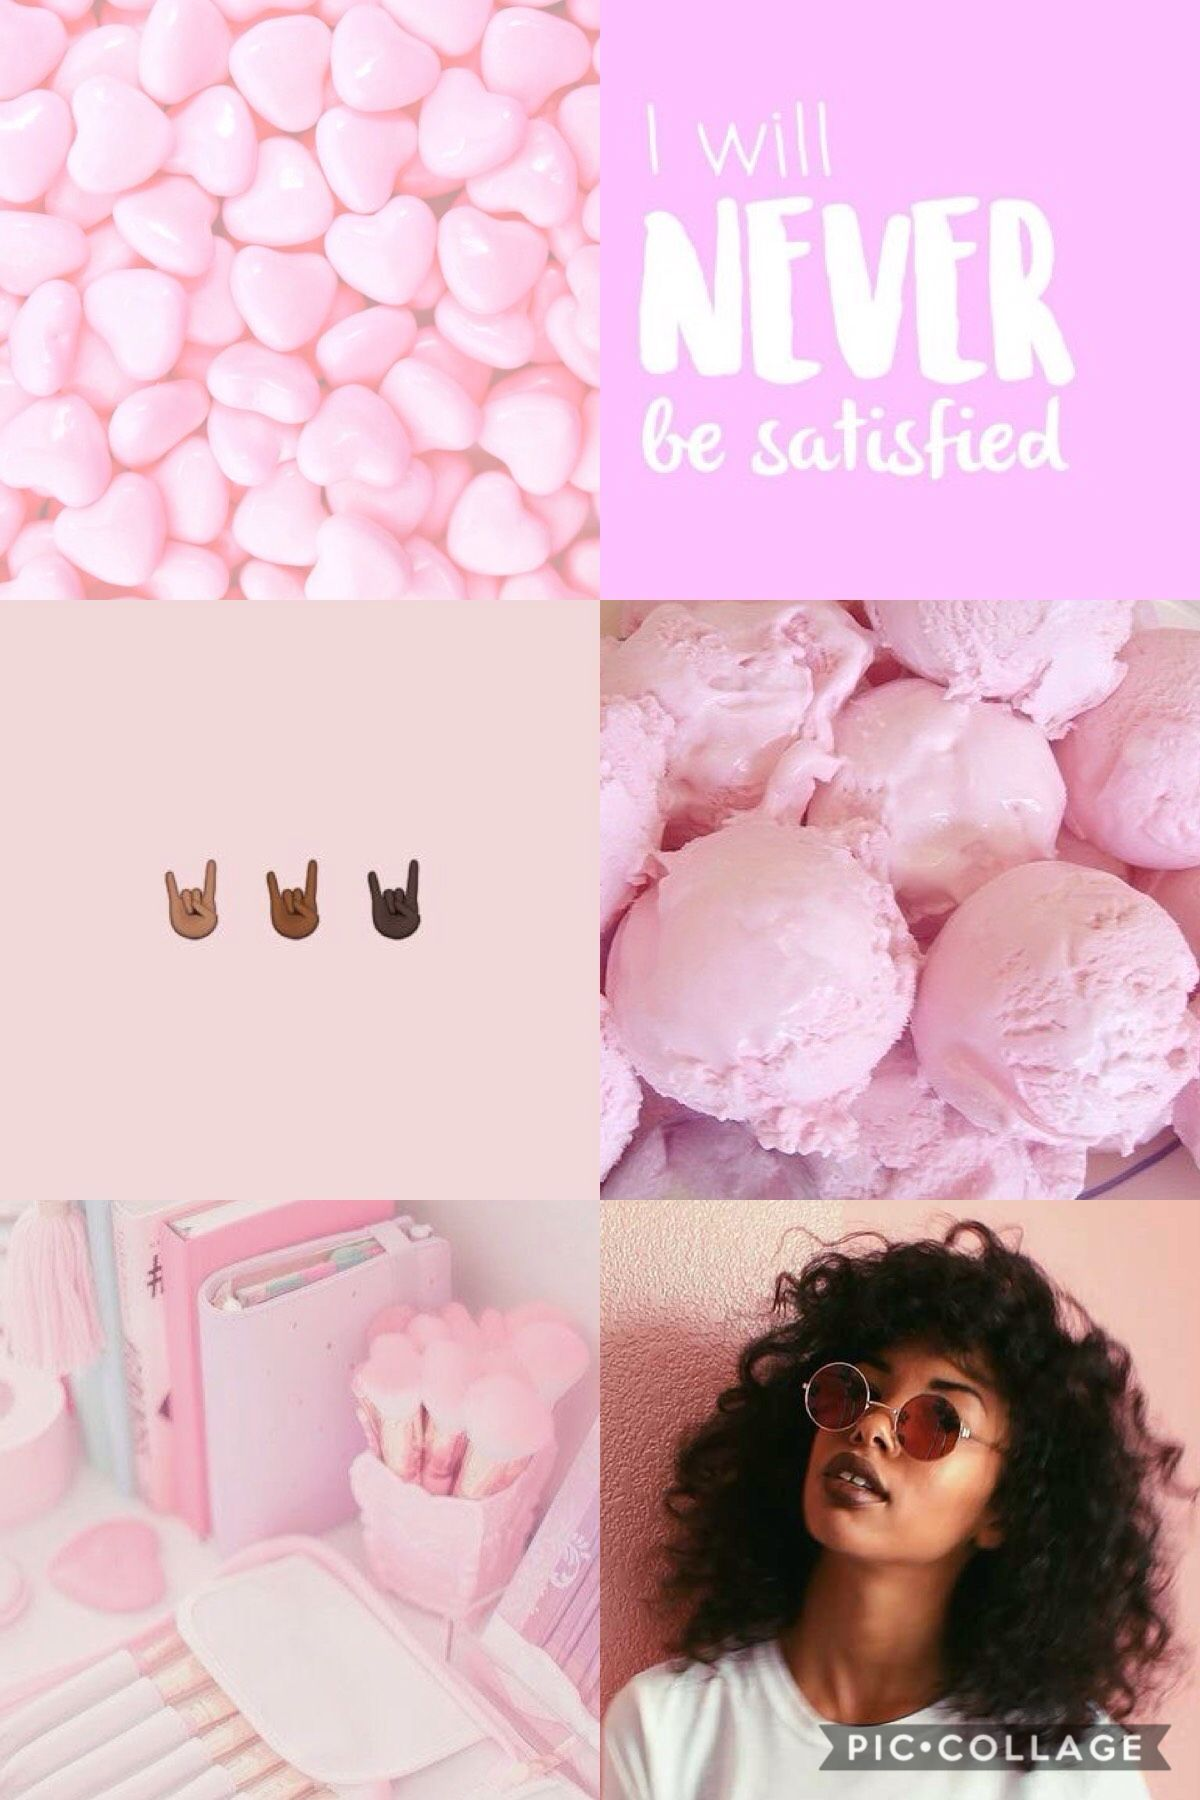 Angelica Schuyler Aesthetic Here S The First Four Who Should I Do Next And What Color For Them Hamilton Alexander Hamilton Schuyler